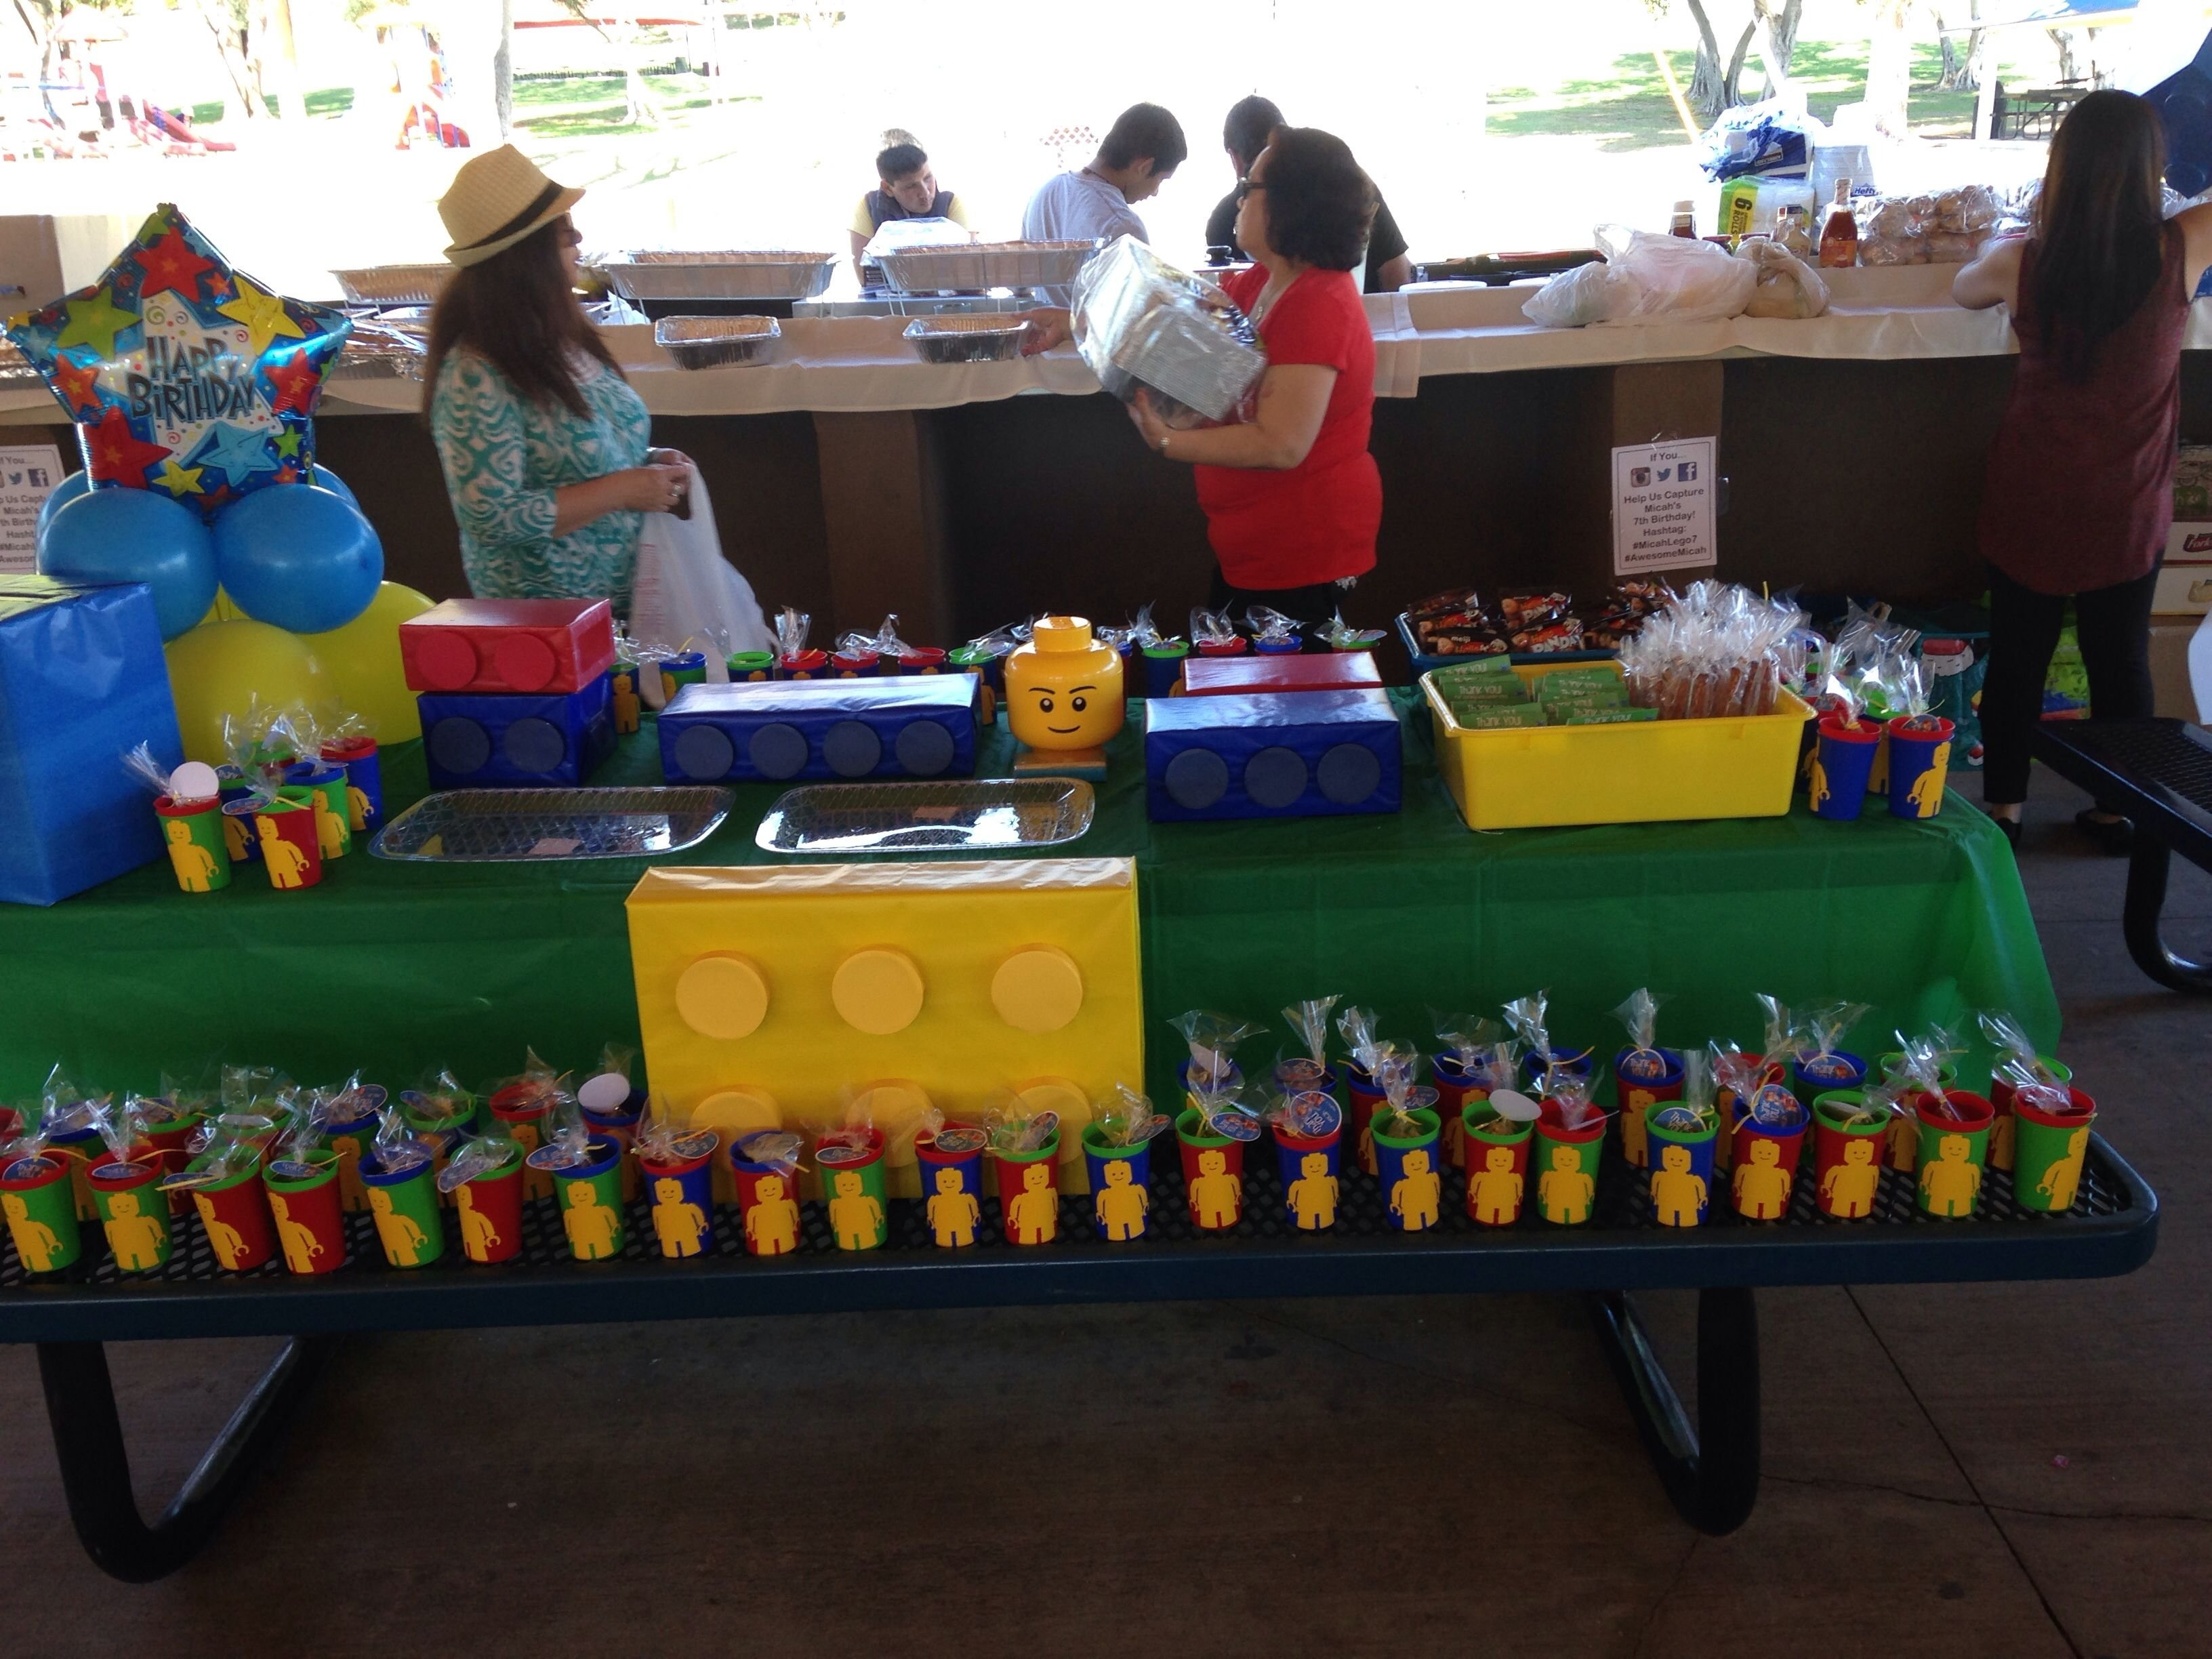 10 Best 7 Year Old Birthday Party Ideas a lego themes birthday party for a 7 year old boy so cute 2020